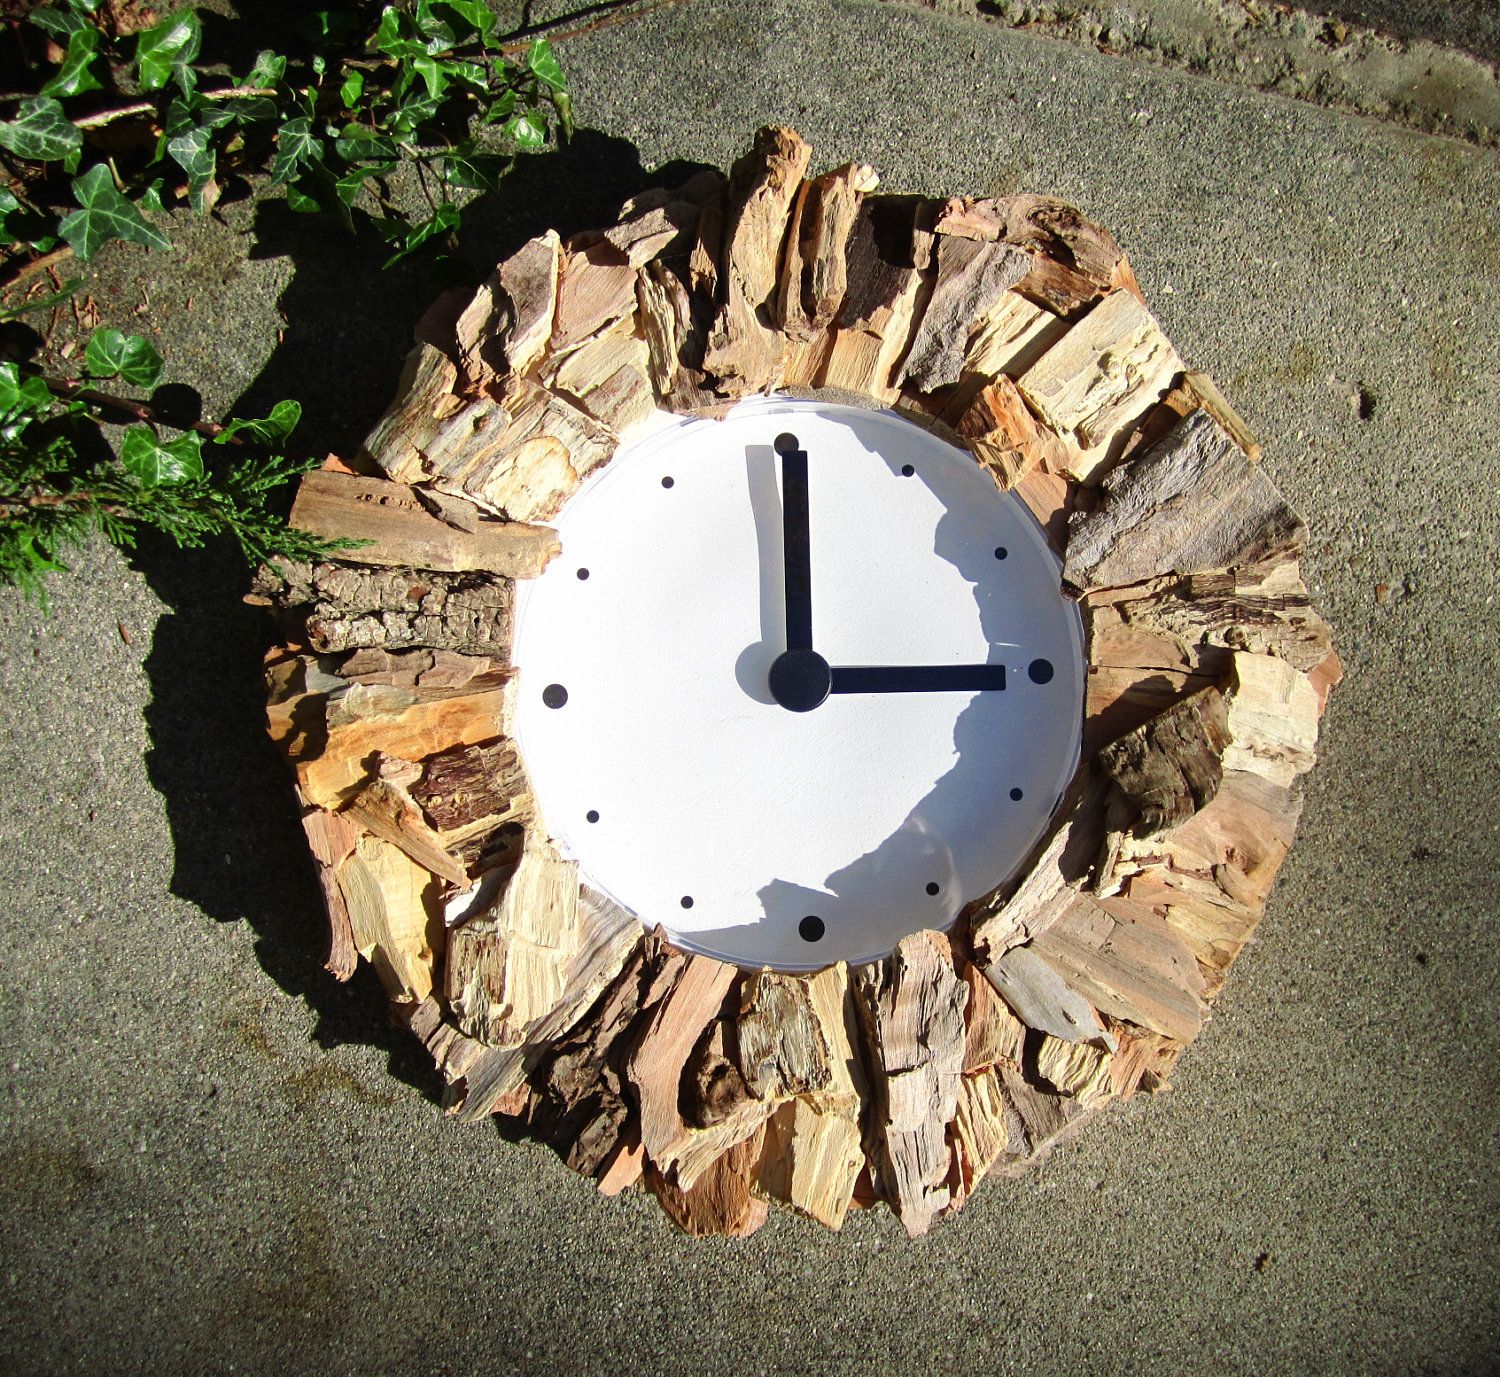 On sale reclaimed wood handcrafted rustic driftwood framed round on sale reclaimed wood handcrafted rustic driftwood framed round wall clock 5200 via etsy amipublicfo Image collections